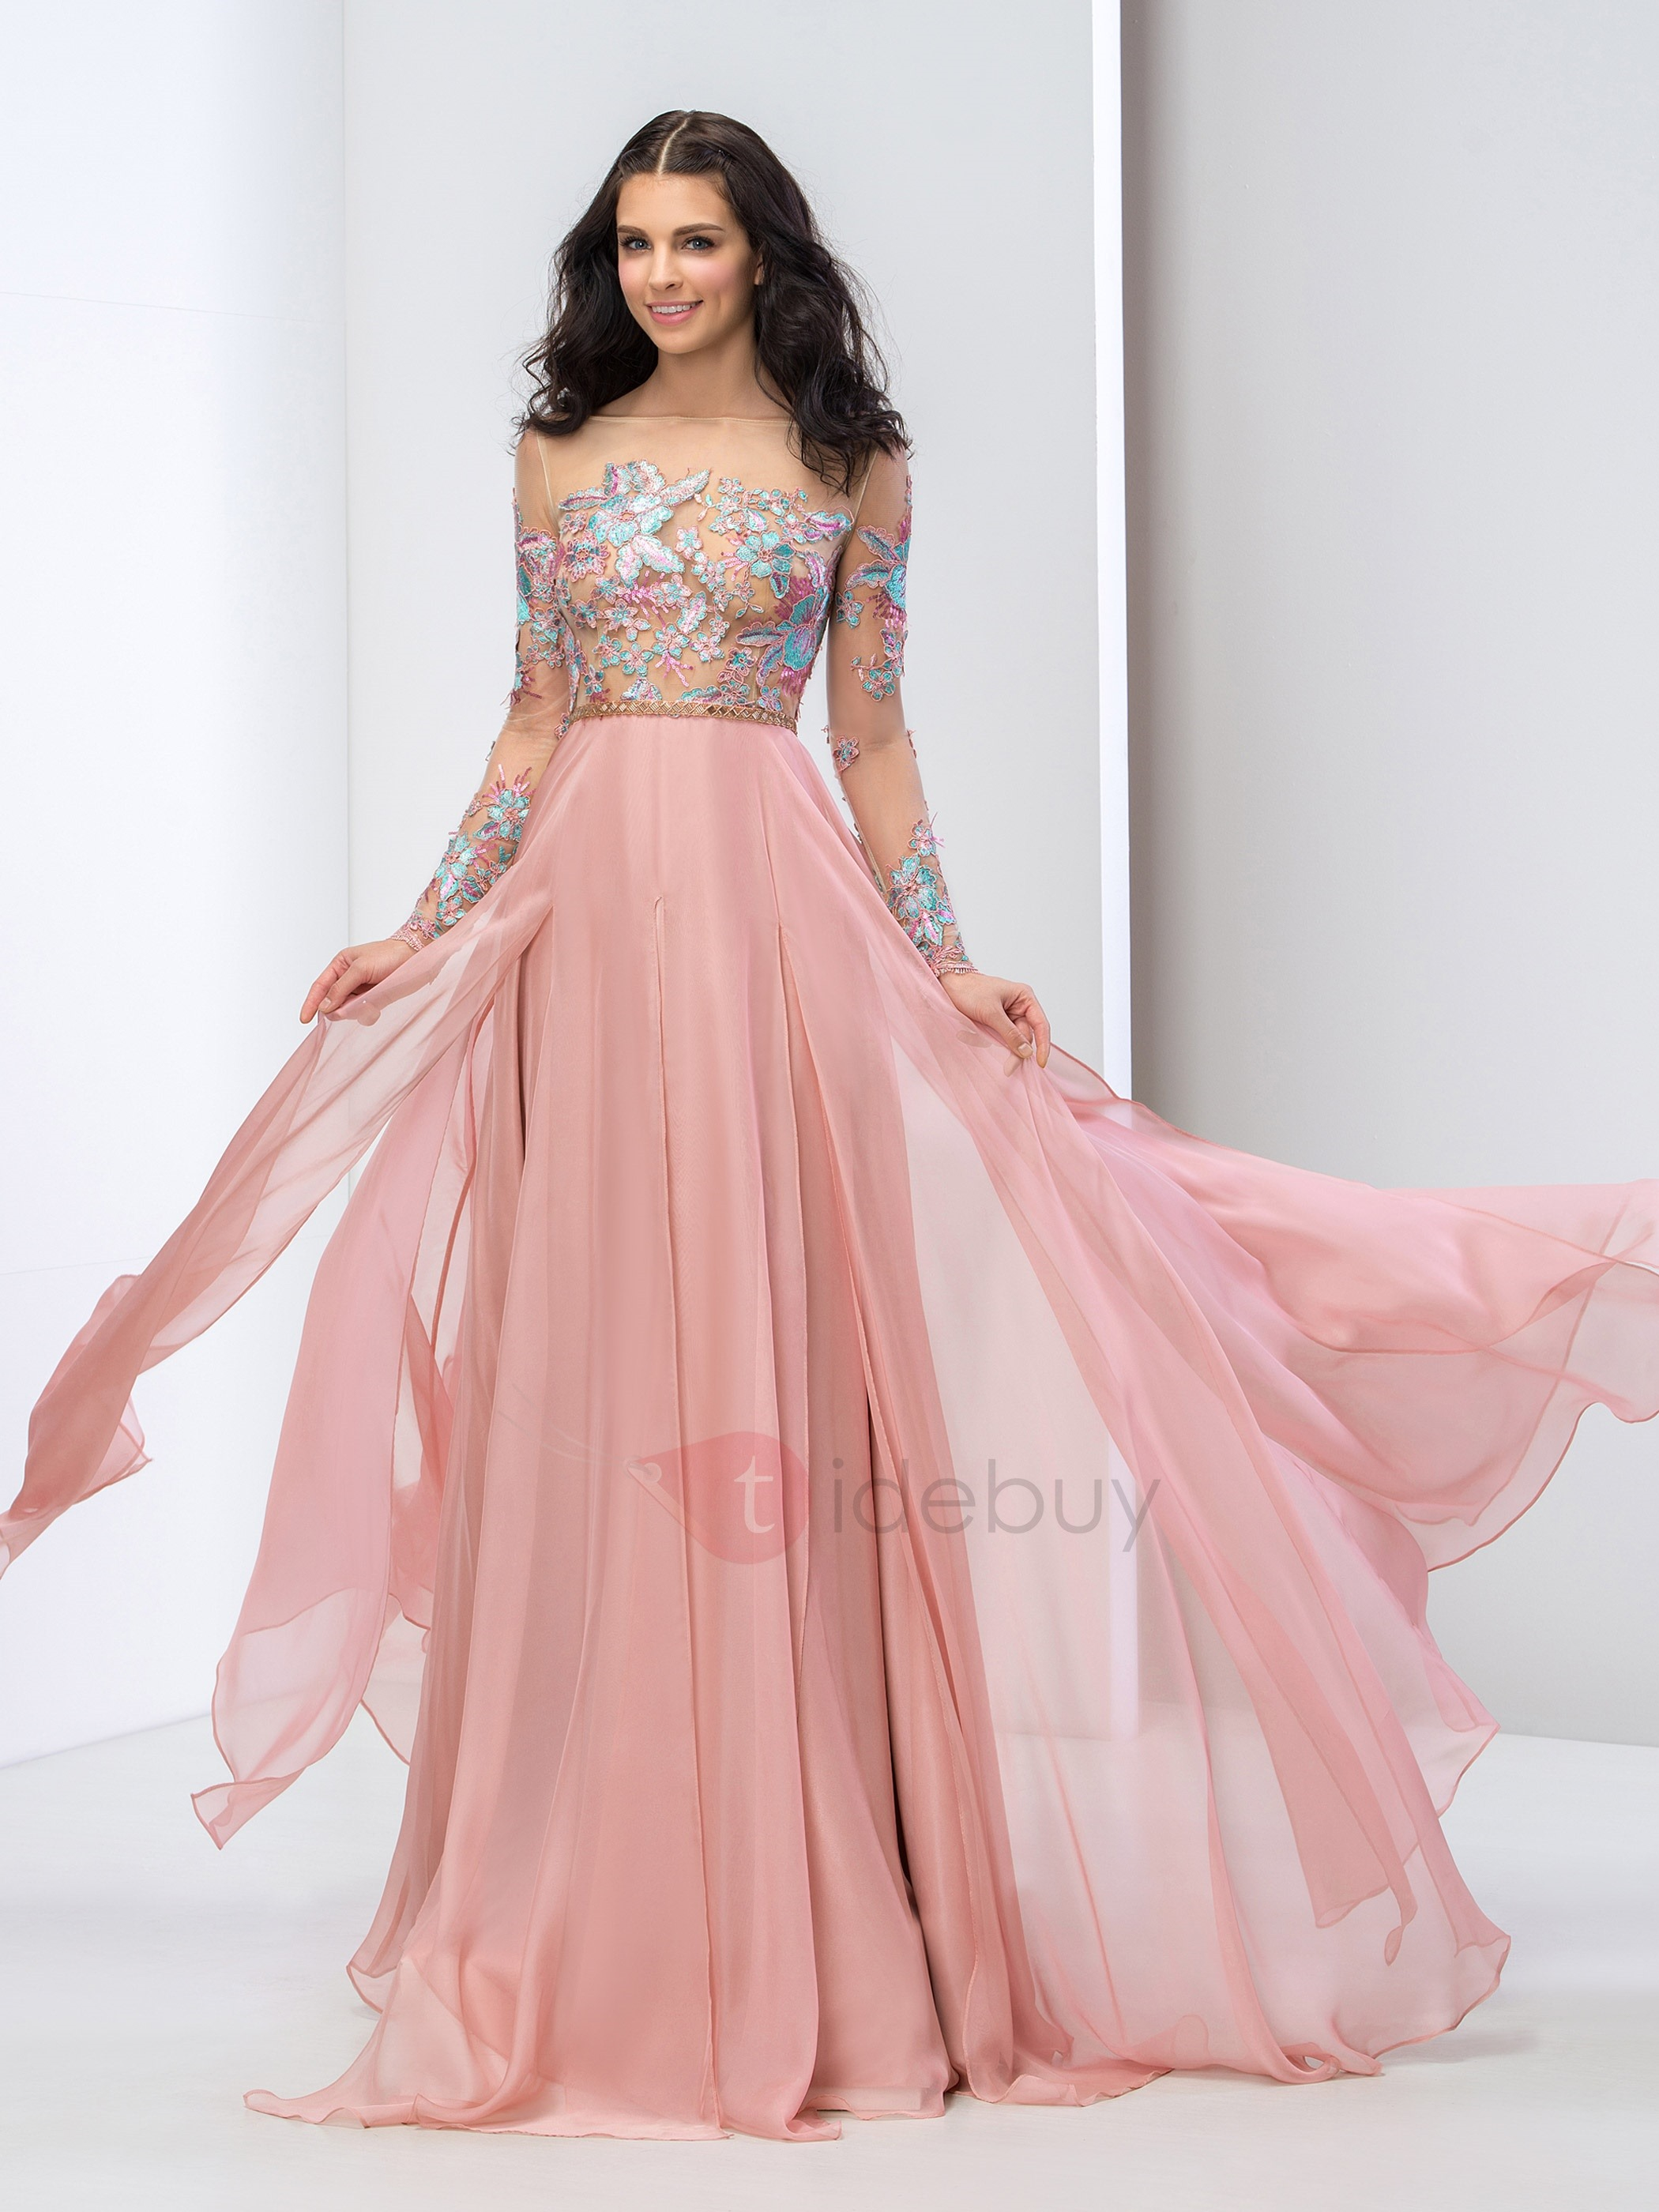 prom dresses with sleeves stunning bateau neck long sleeves appliques prom dress : tidebuy.com nkdcrxq